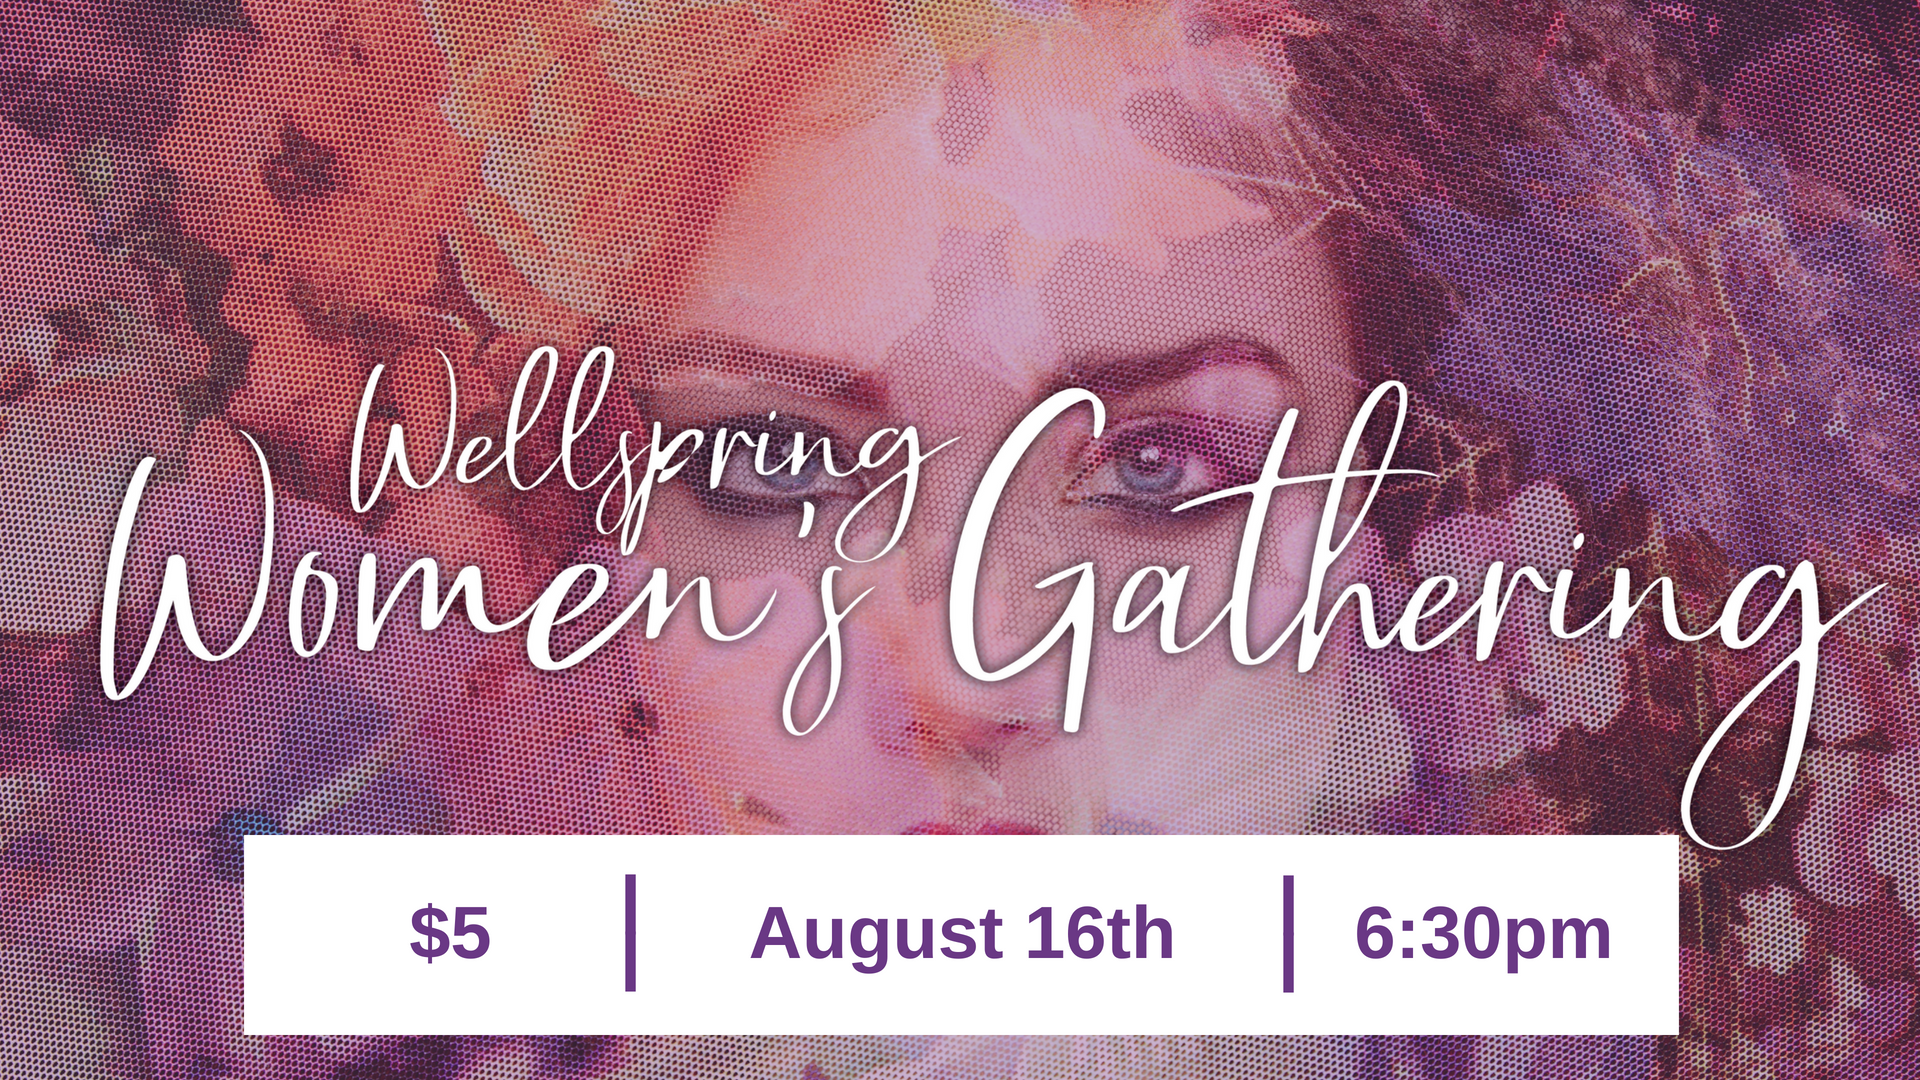 Wellspring women s gathering update time